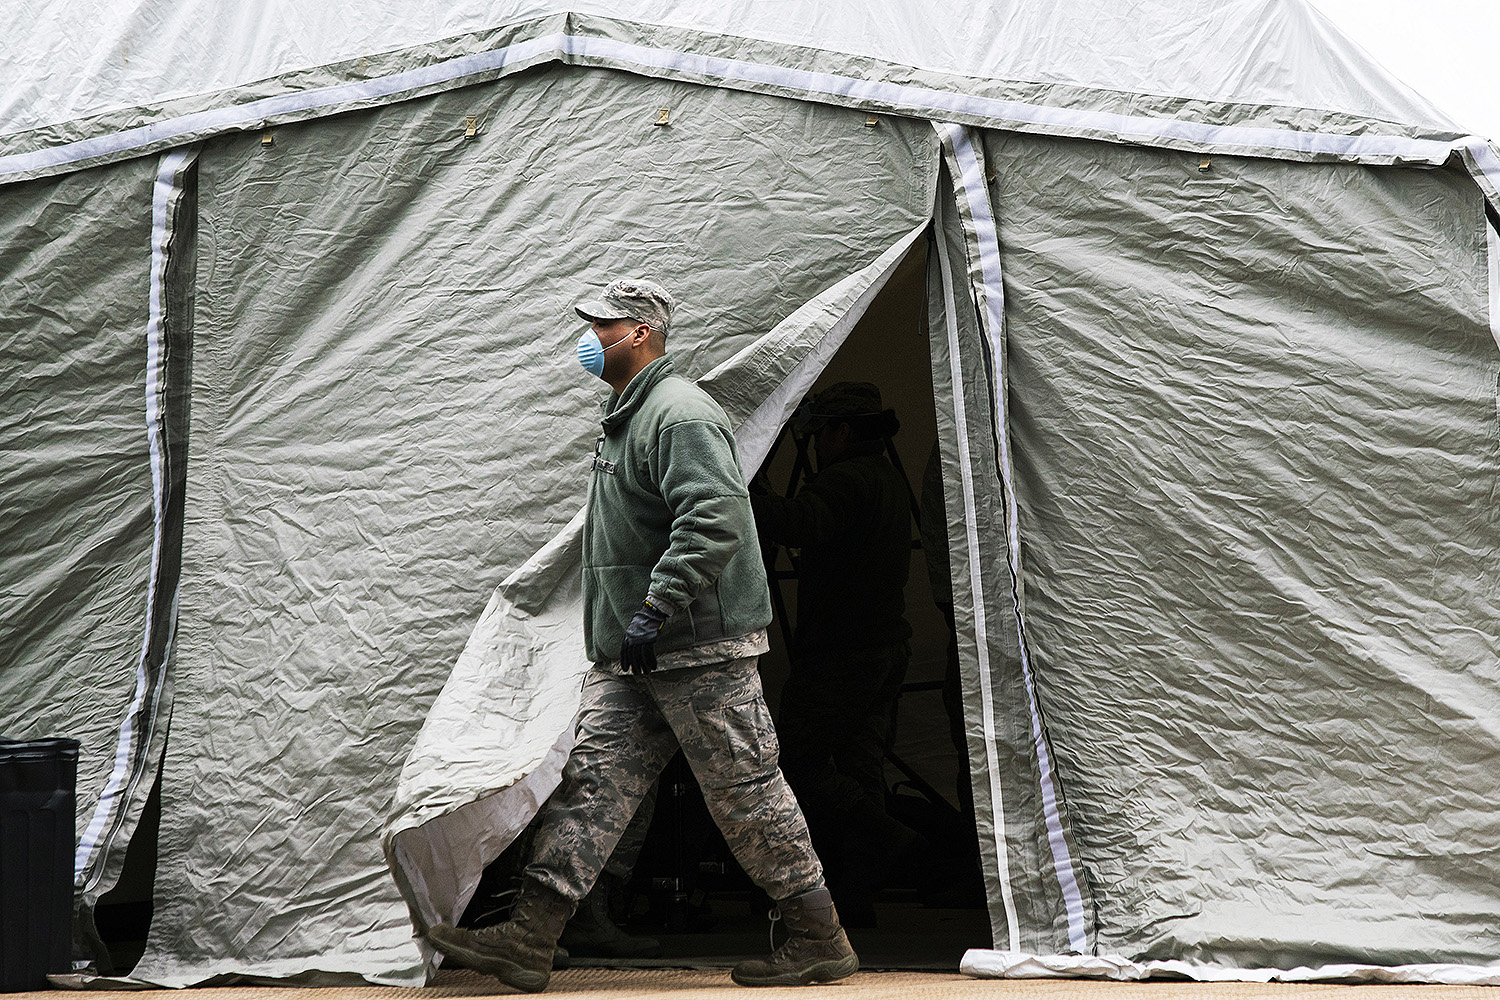 A member of the U.S. Air Force exits a makeshift morgue outside Bellevue Hospital in New York City on March 25. Eduardo Munoz Alvarez/Getty Images